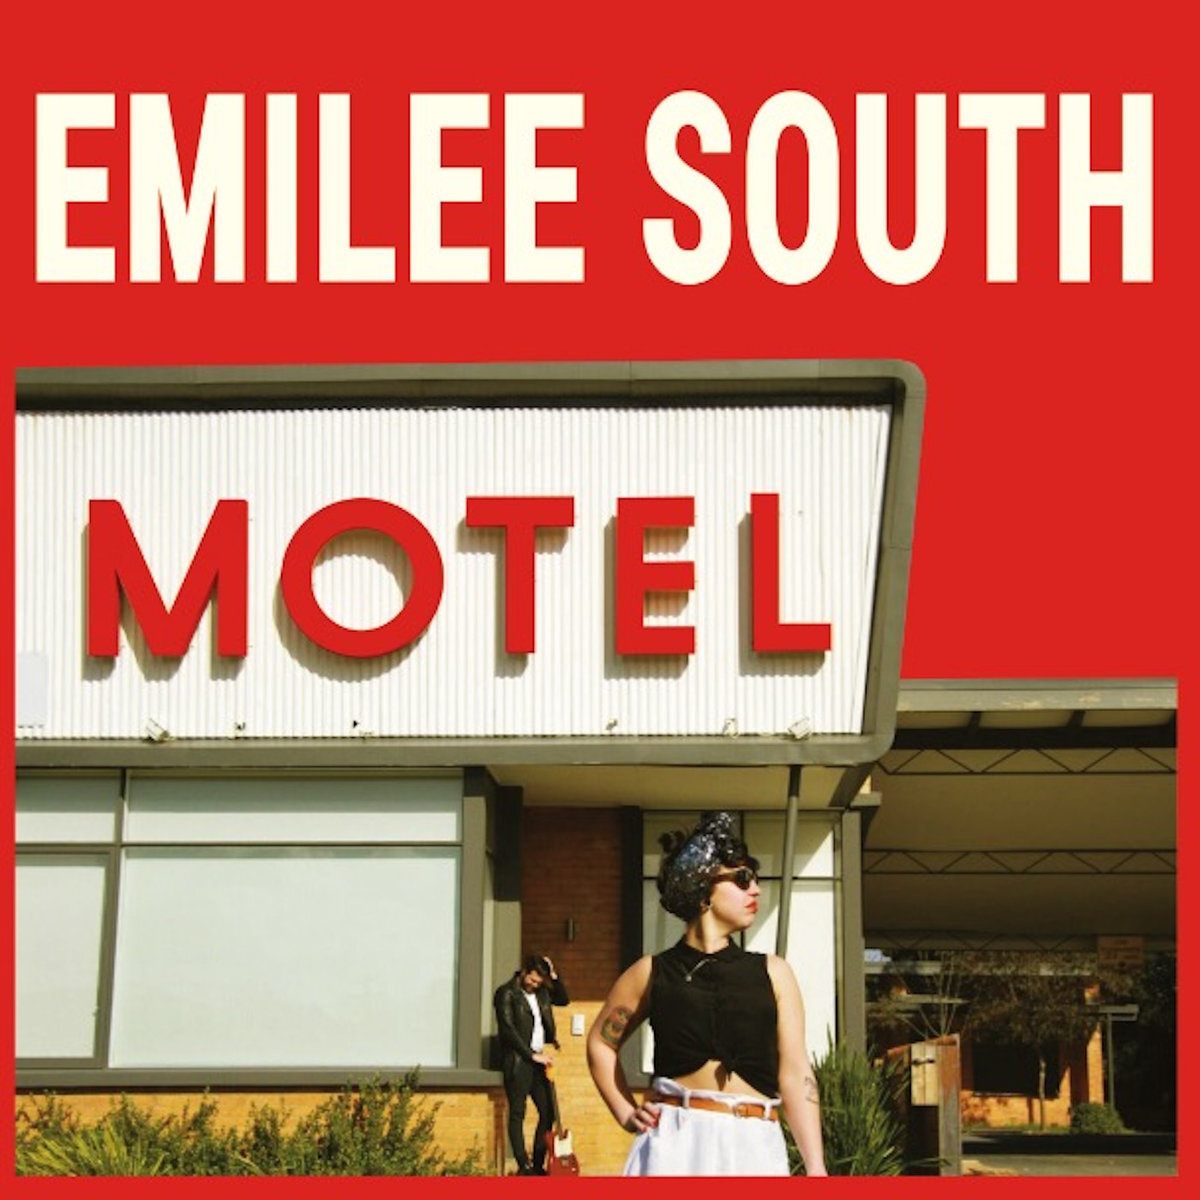 Emilee South - MOTEL      Baritone Guitar